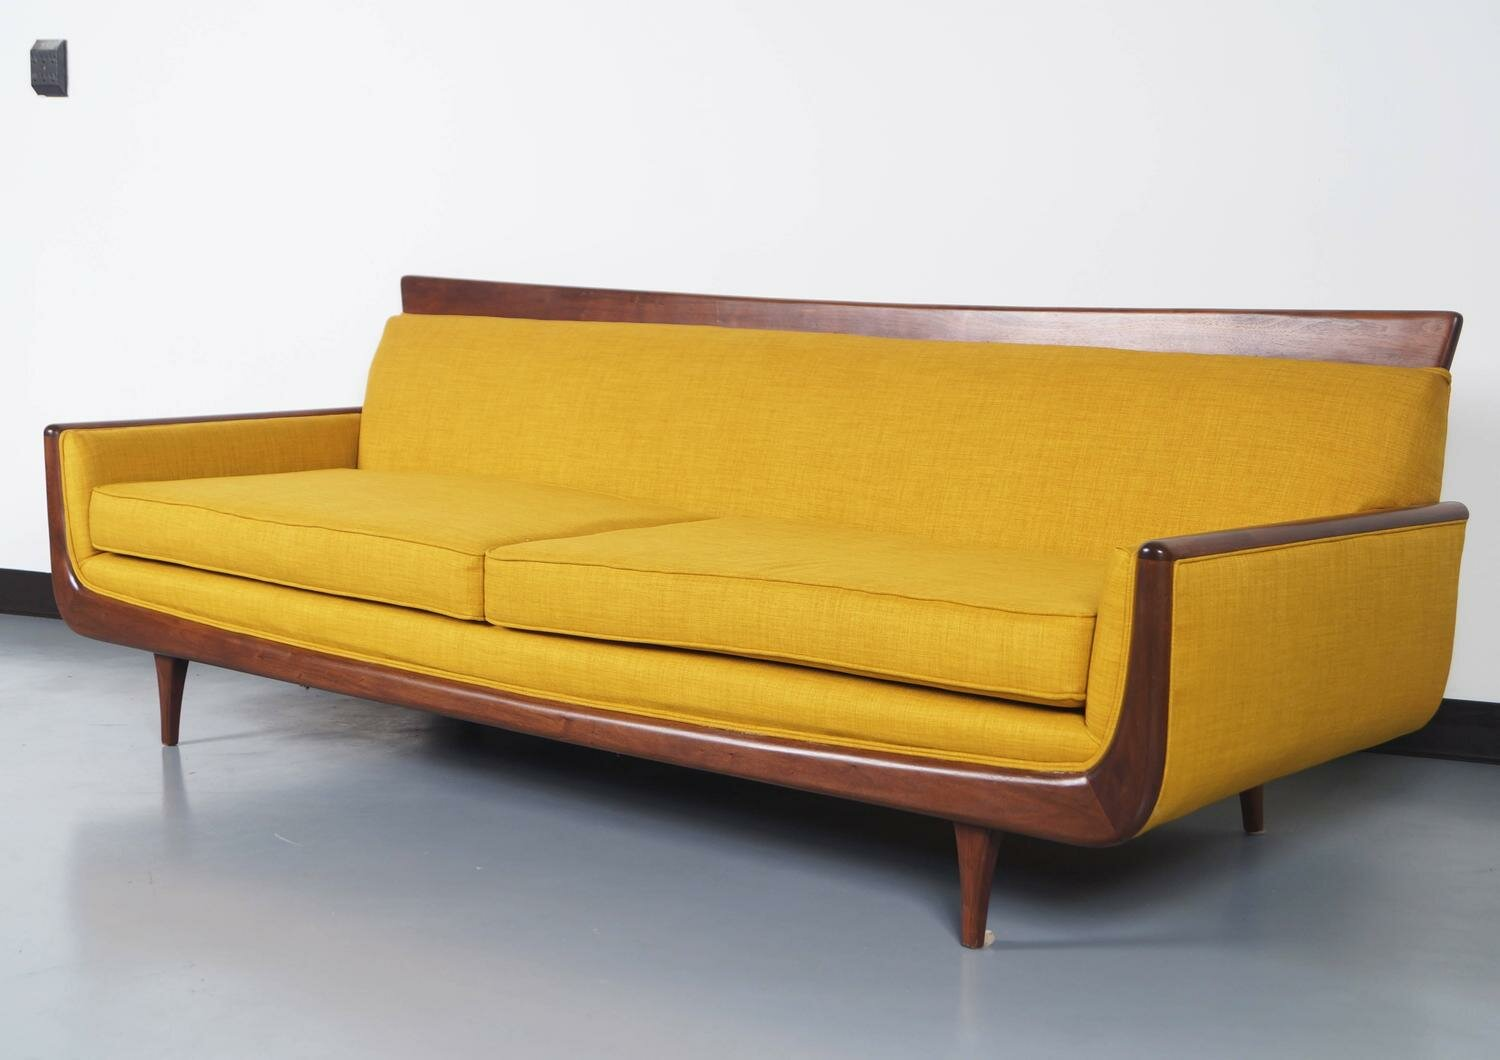 Discount Danish Furniture | Mid Century Inspired Sofa | Mid Century Sofas